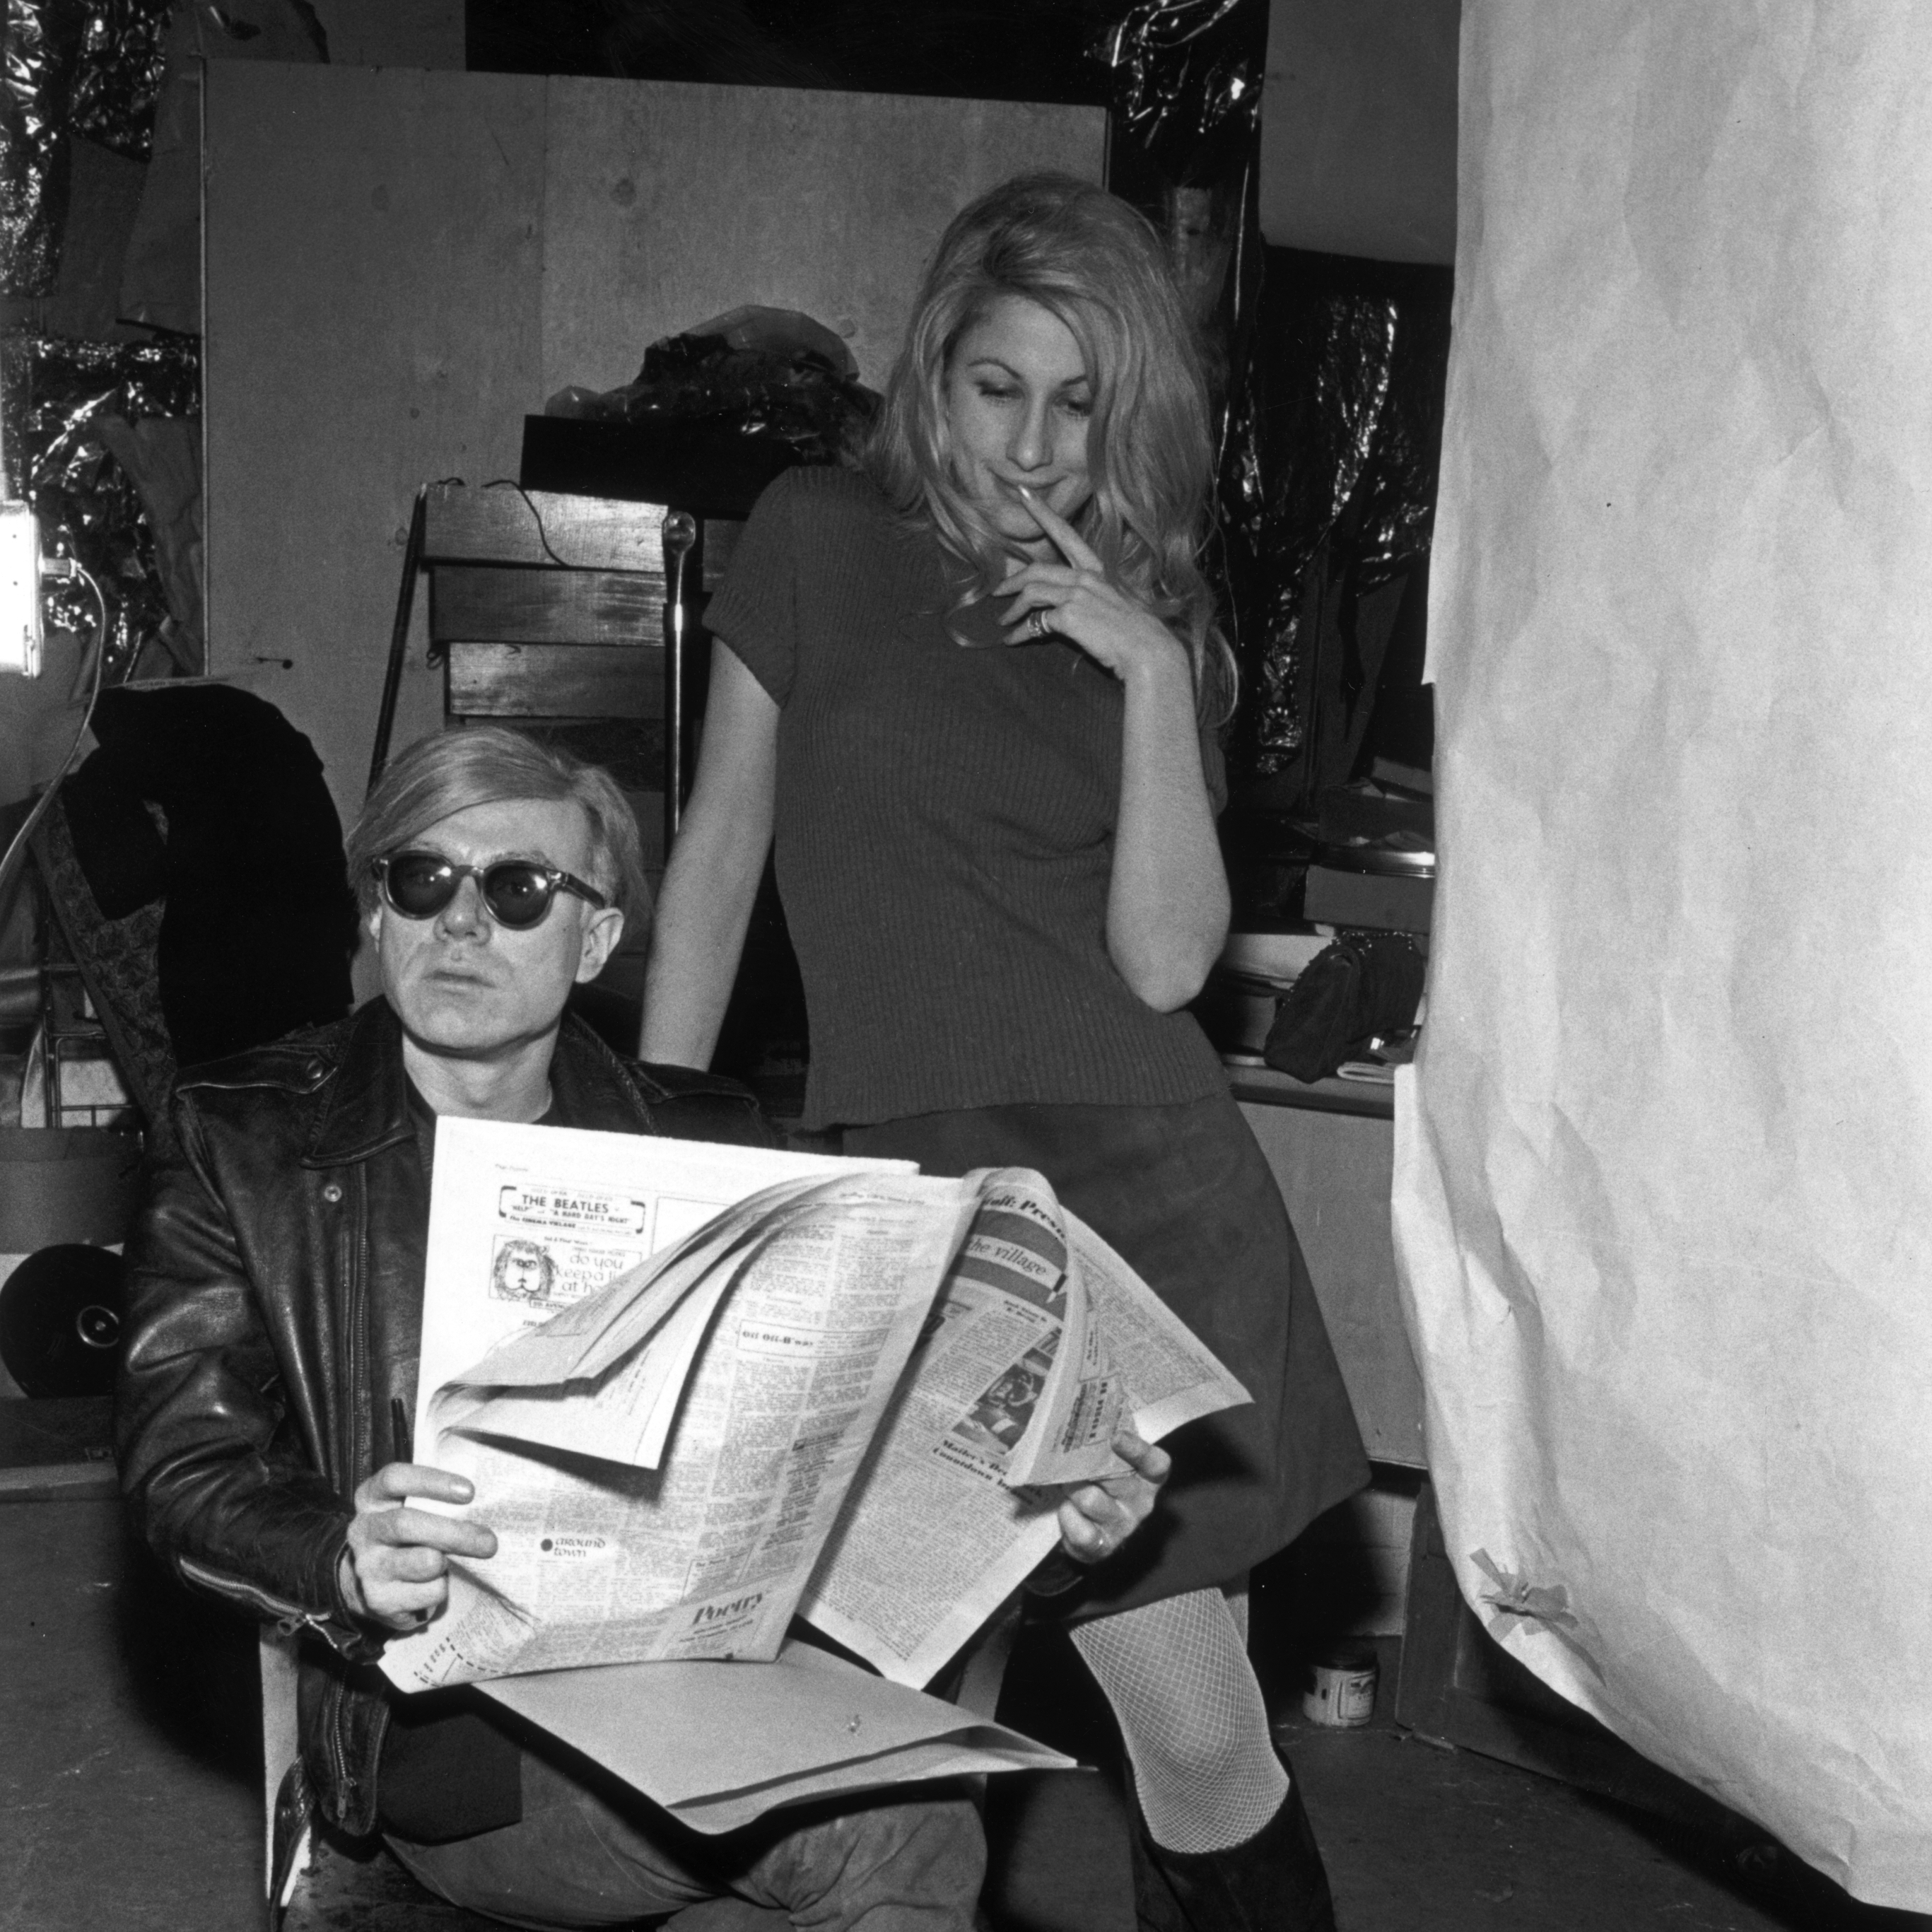 Artist Andy Warhol and Baby Jane Holzer during the filming of Warhol's film Chelsea Girls in 1967.